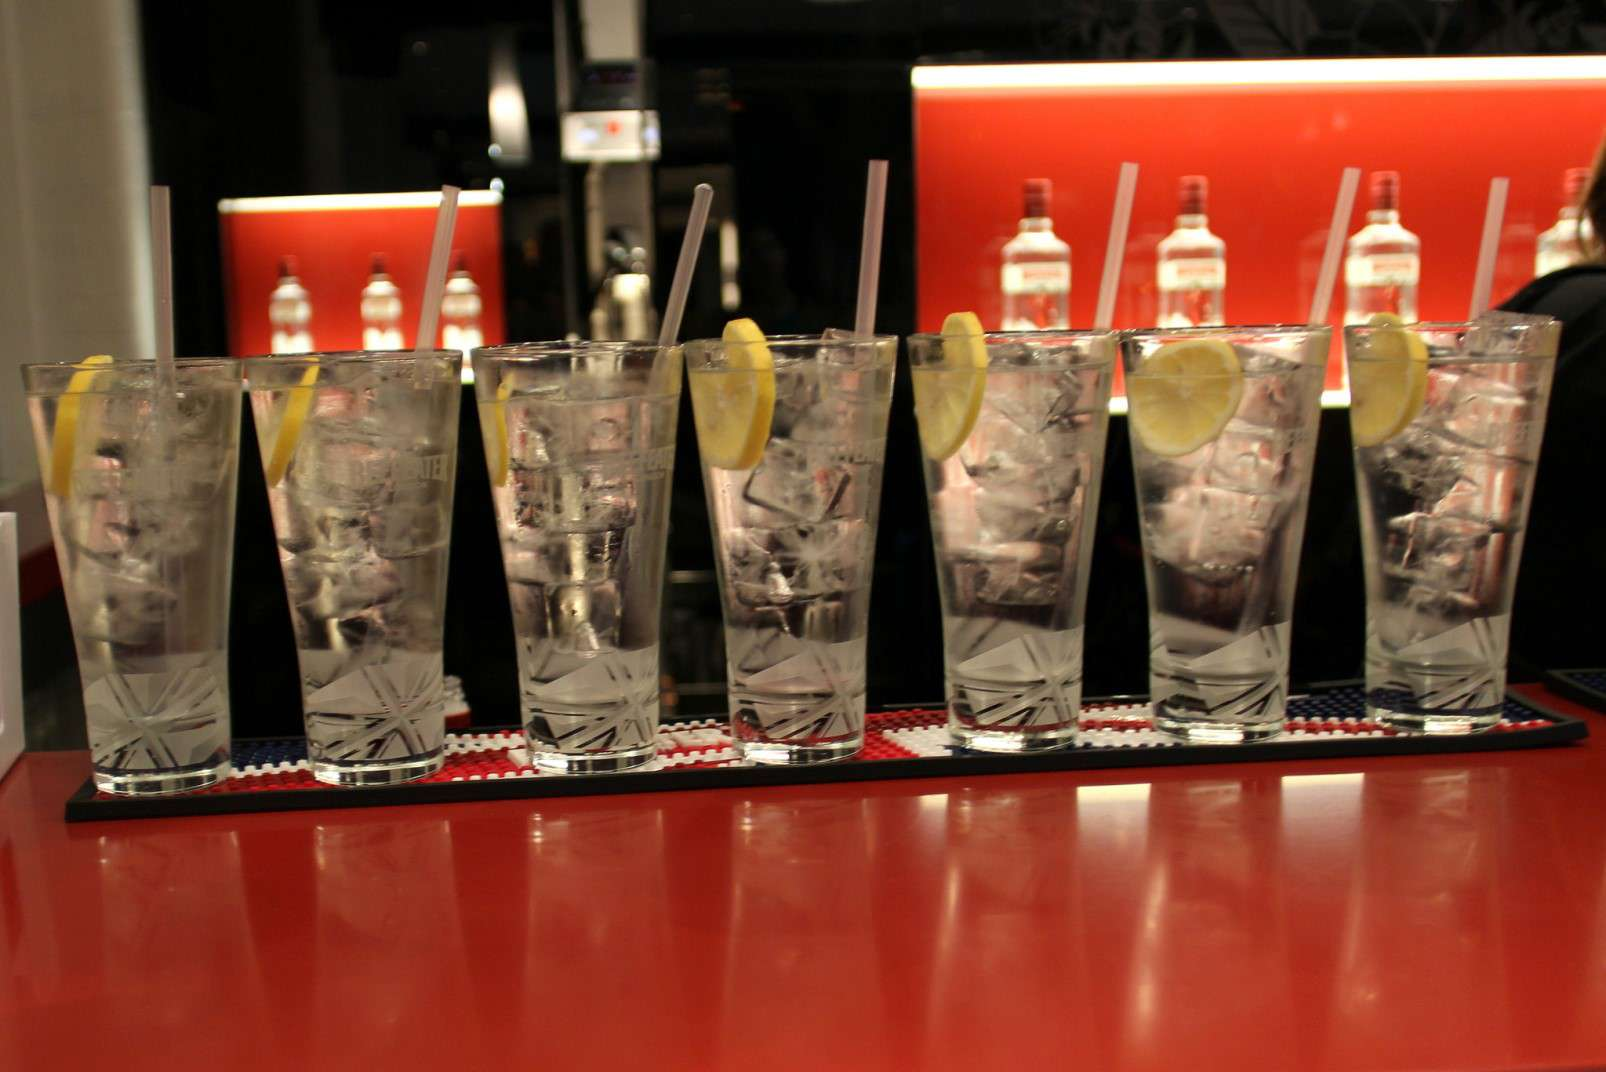 Beefeater gin and tonics